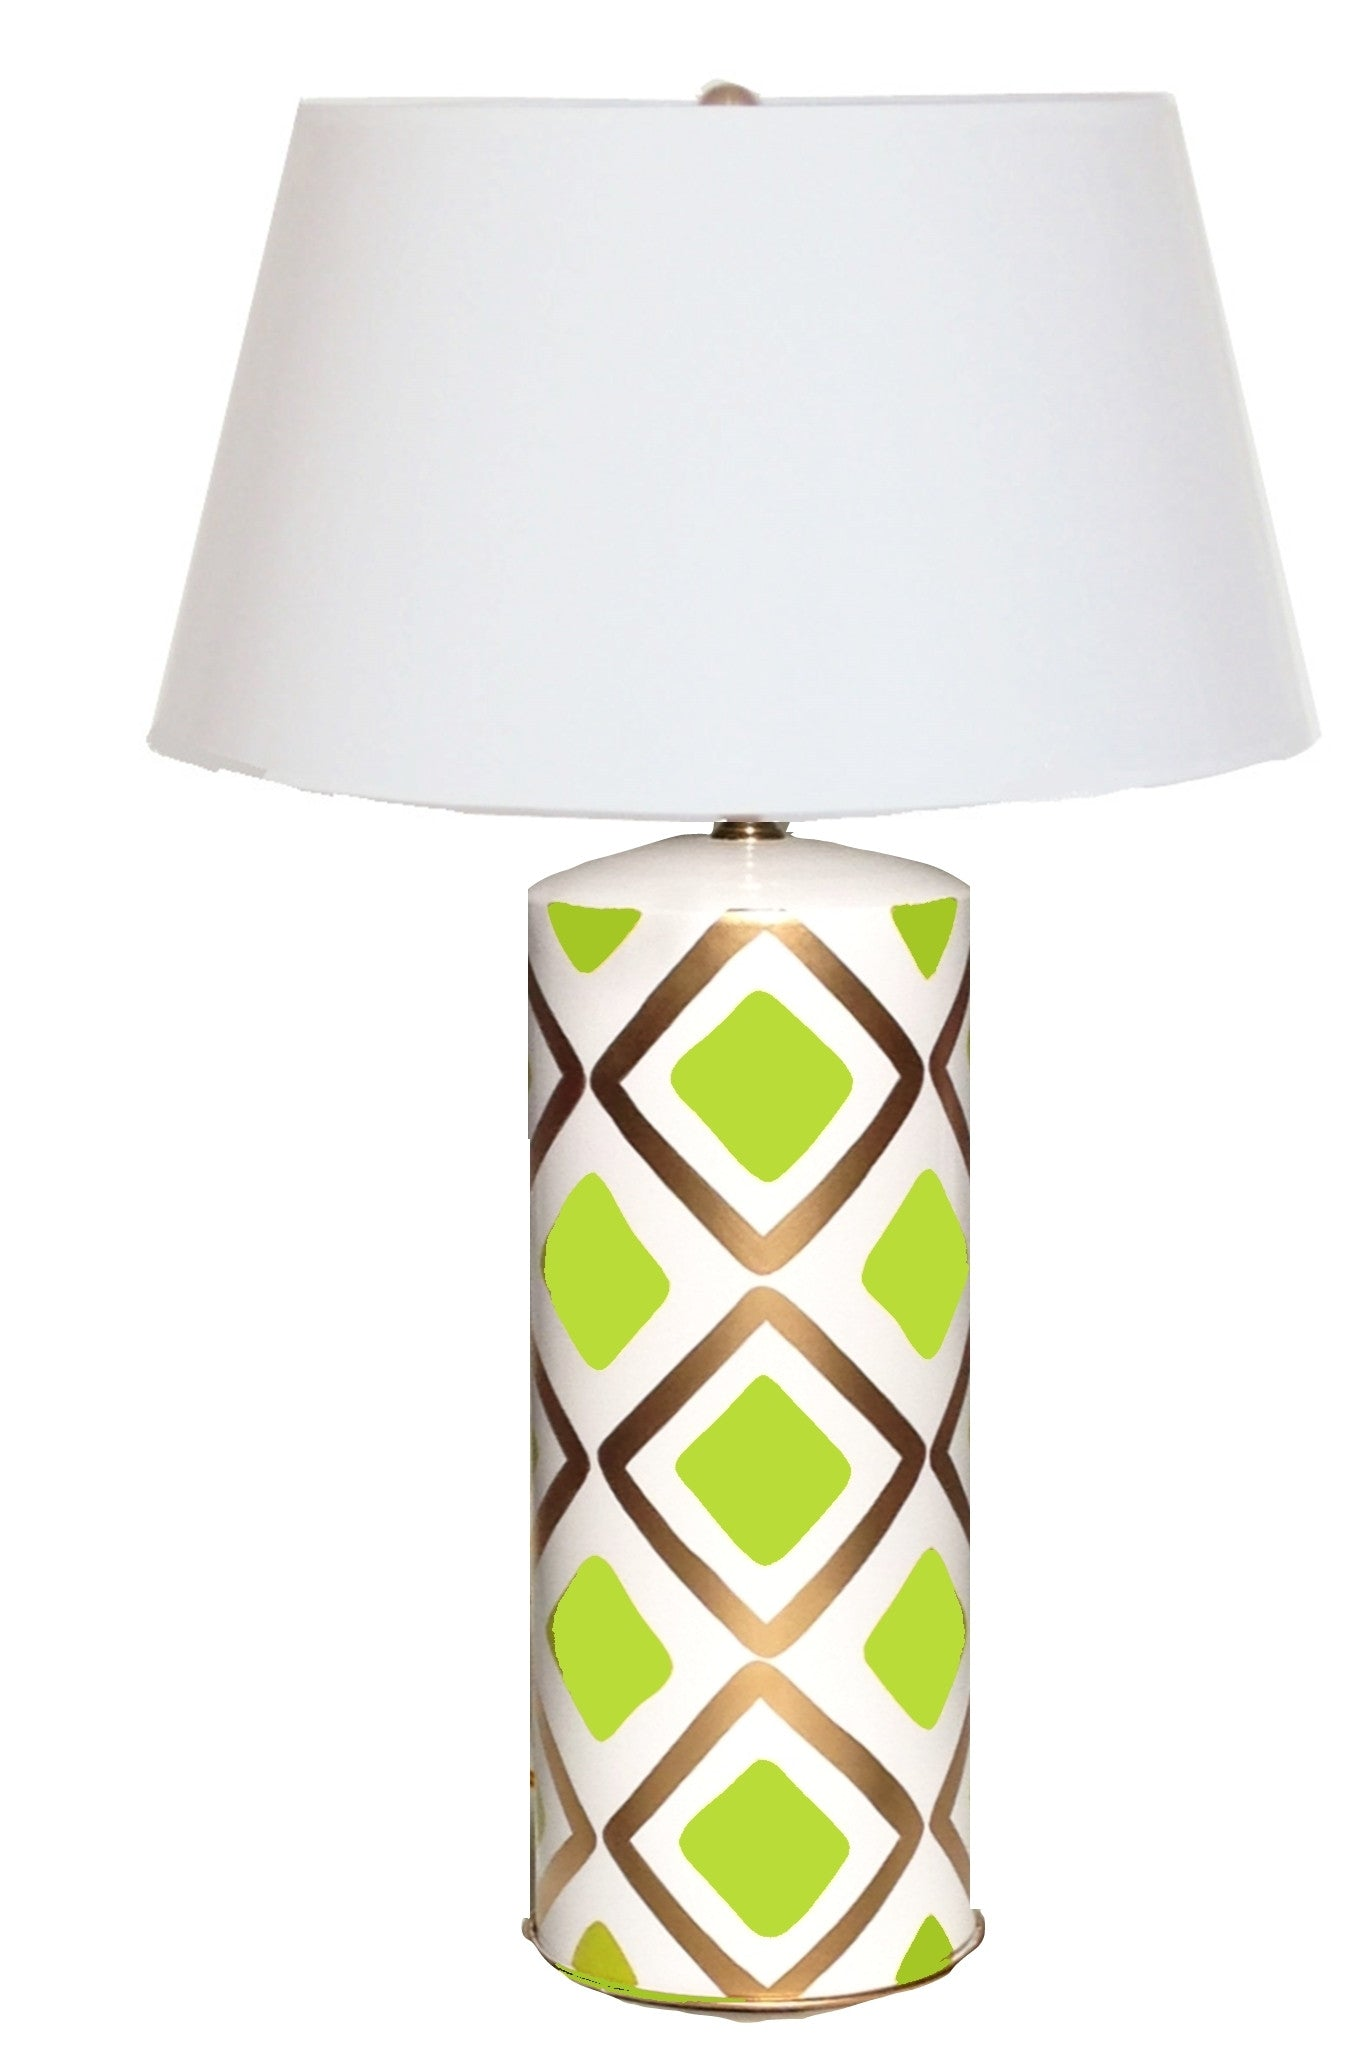 Haslam Lamp in Lime